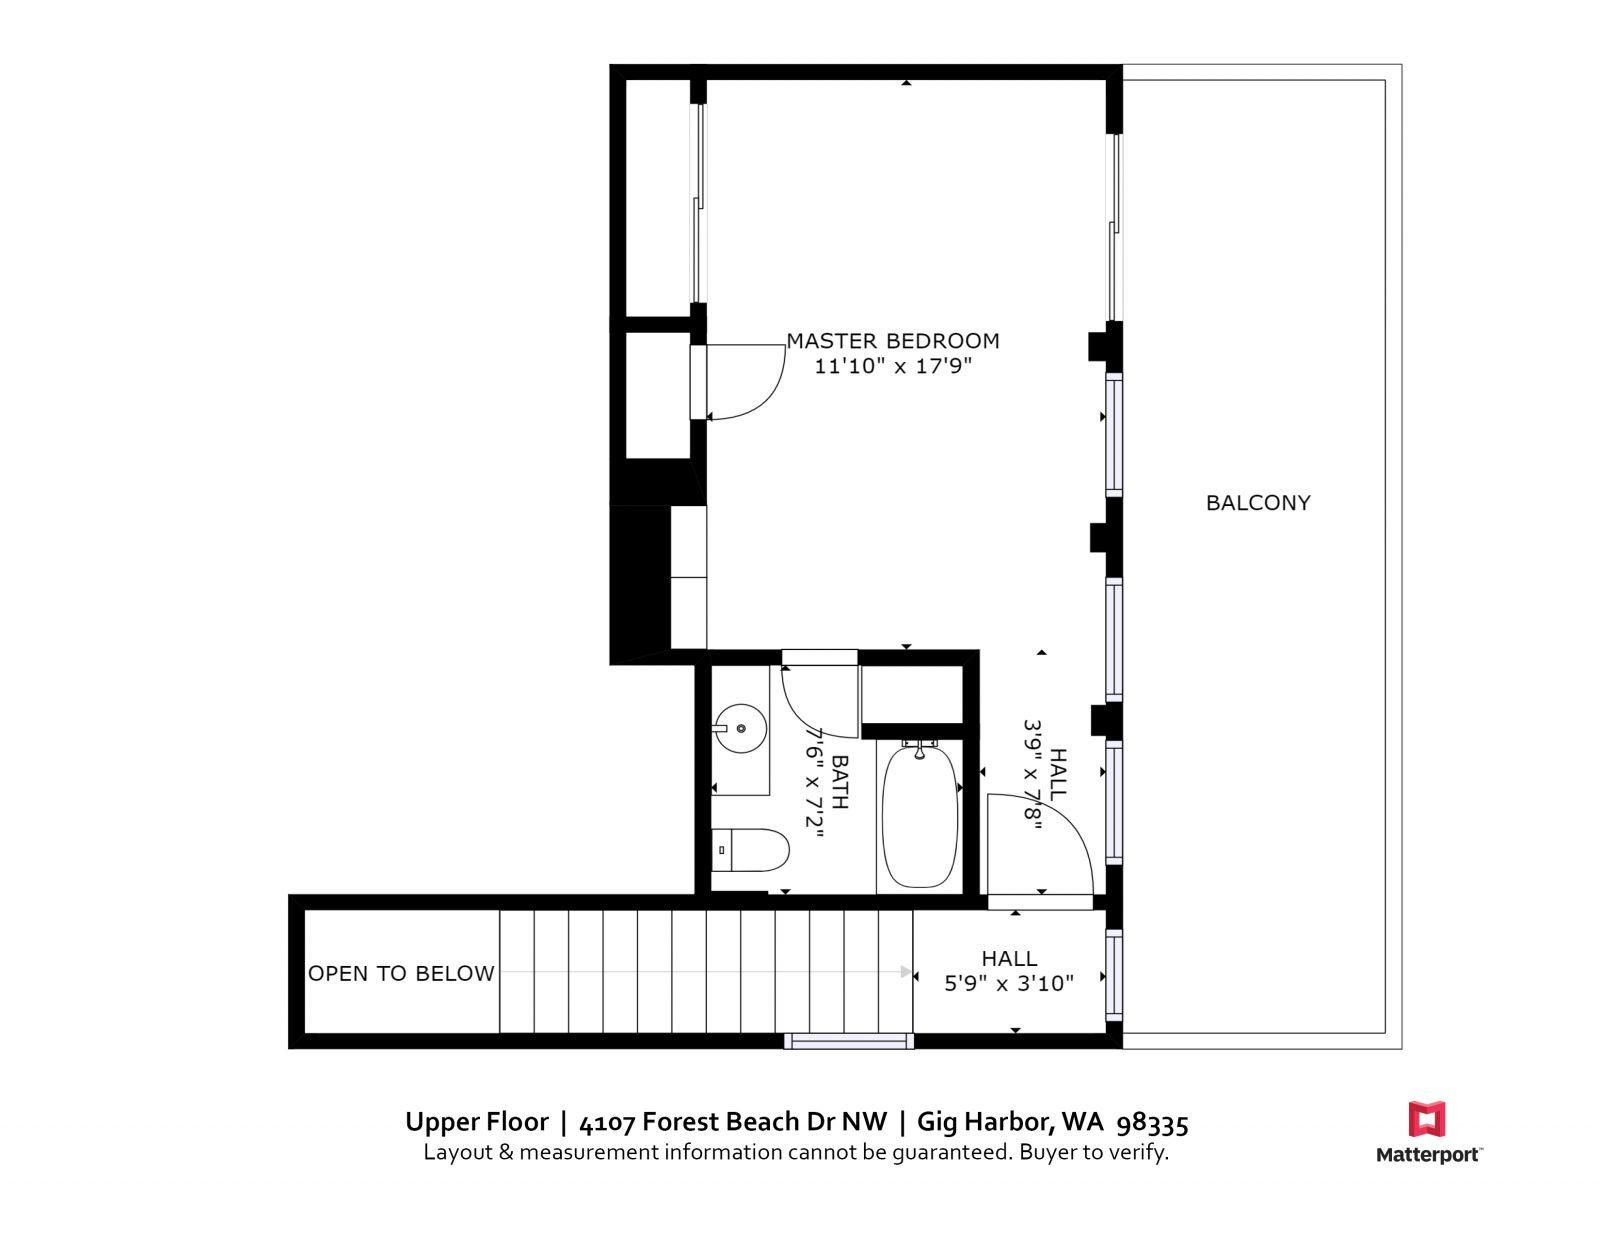 UPPER FLOOR | 4107 Forest Beach Dr NW, Gig Harbor WA